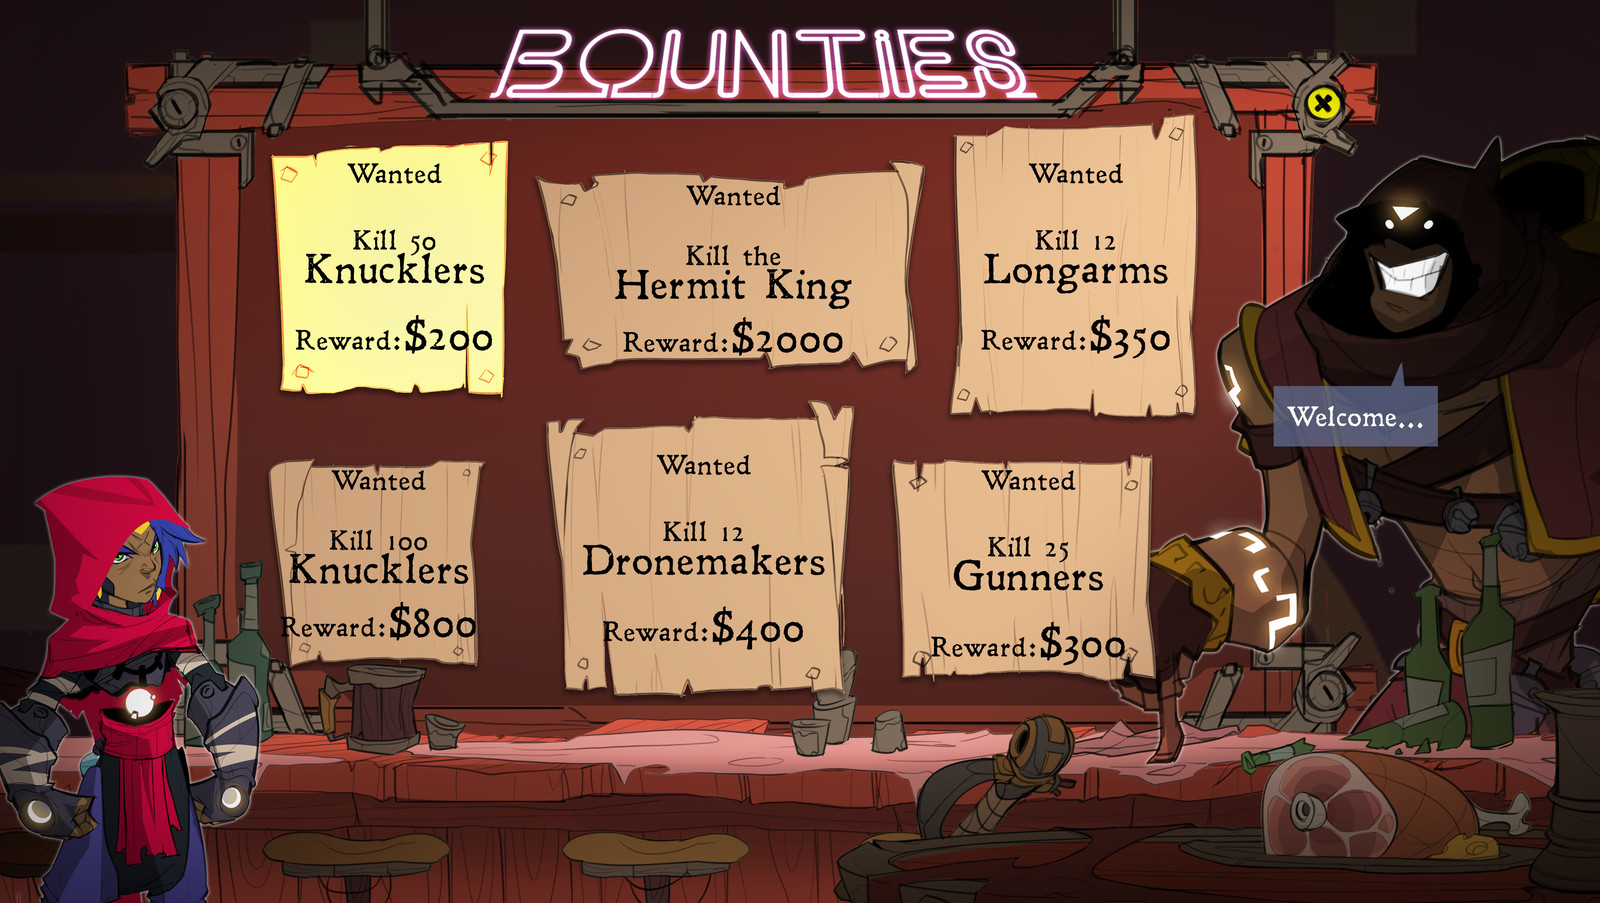 Big Bad Bounty | Bounty Board